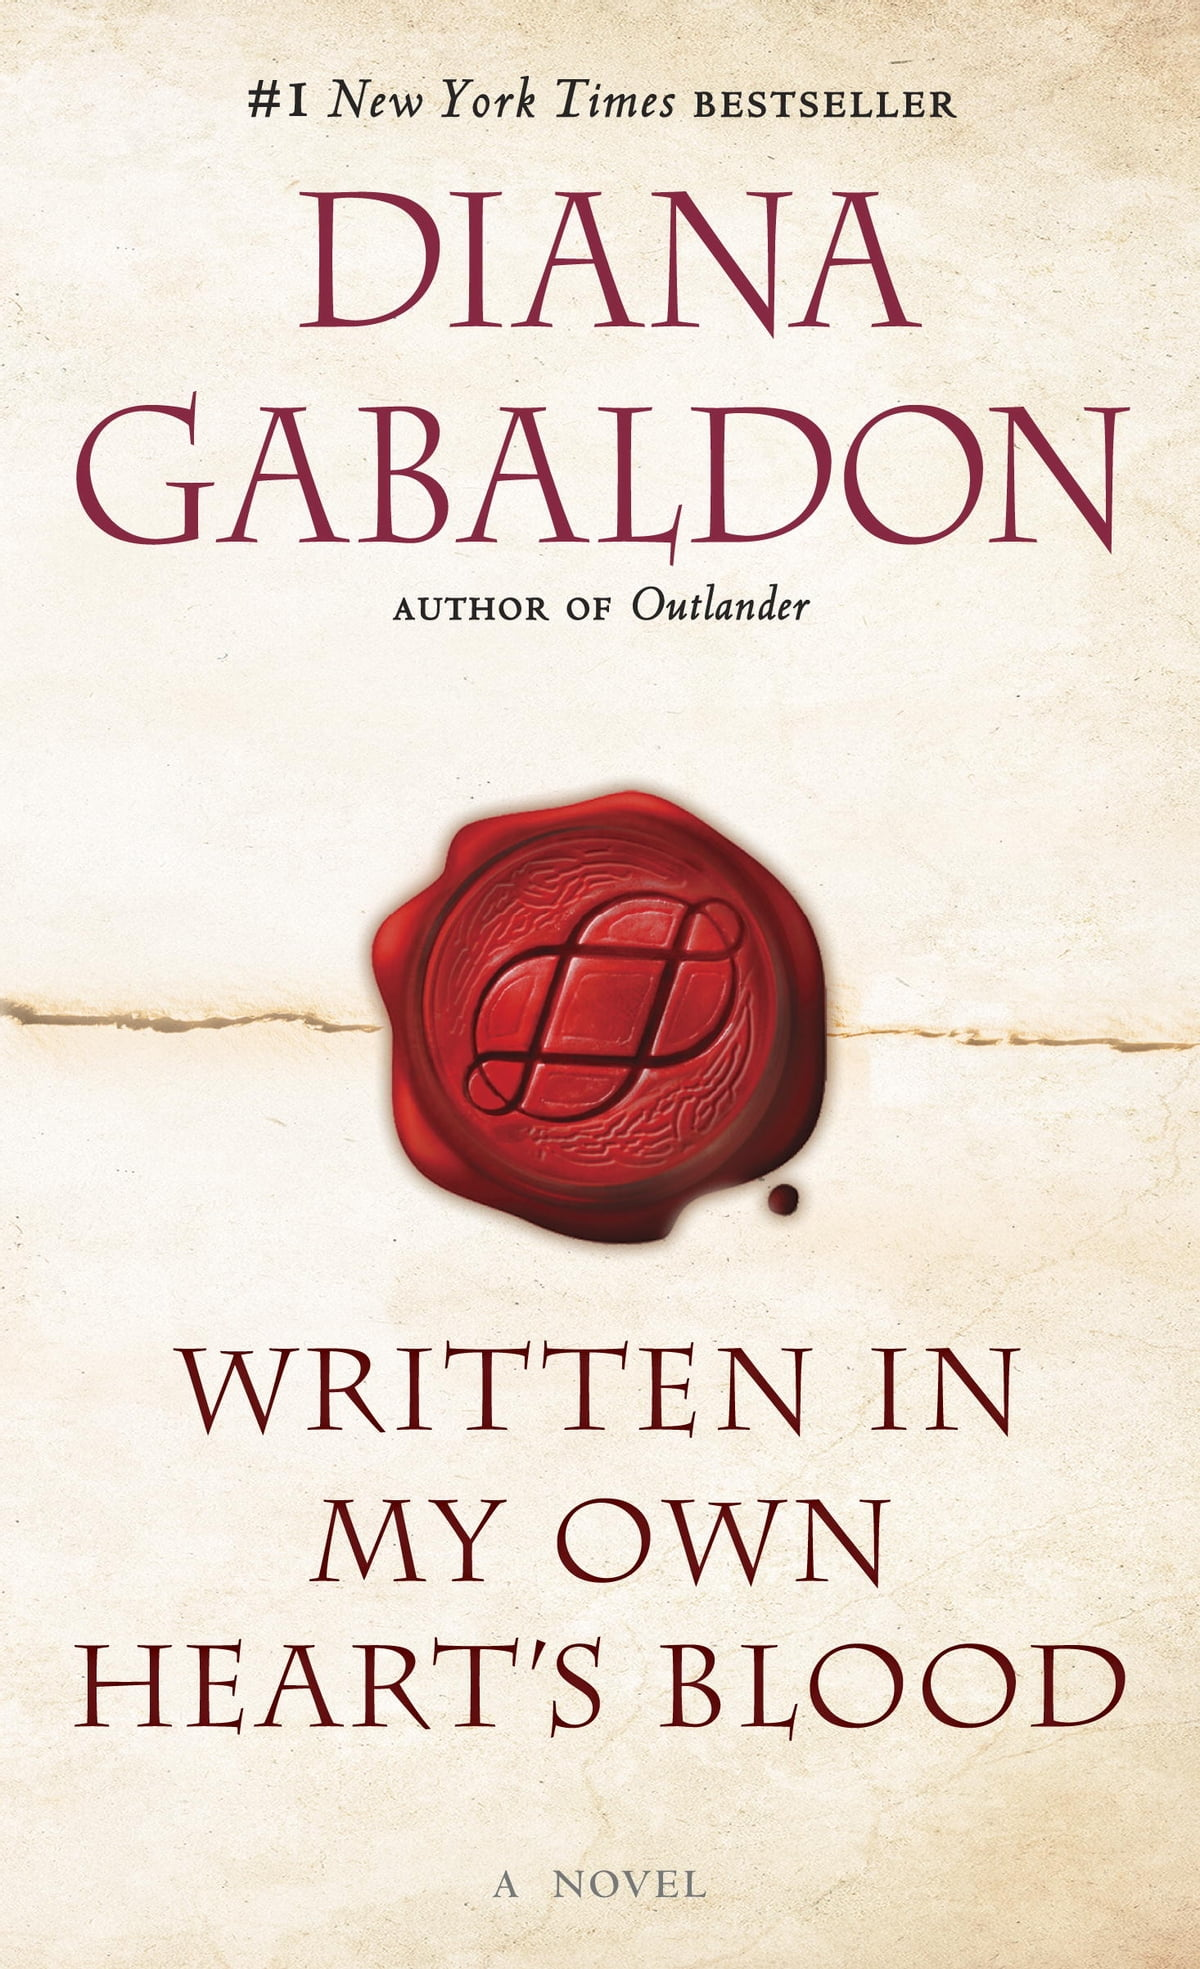 Written in My Own Heart's Blood eBook by Diana Gabaldon - 9780440246442 |  Rakuten Kobo